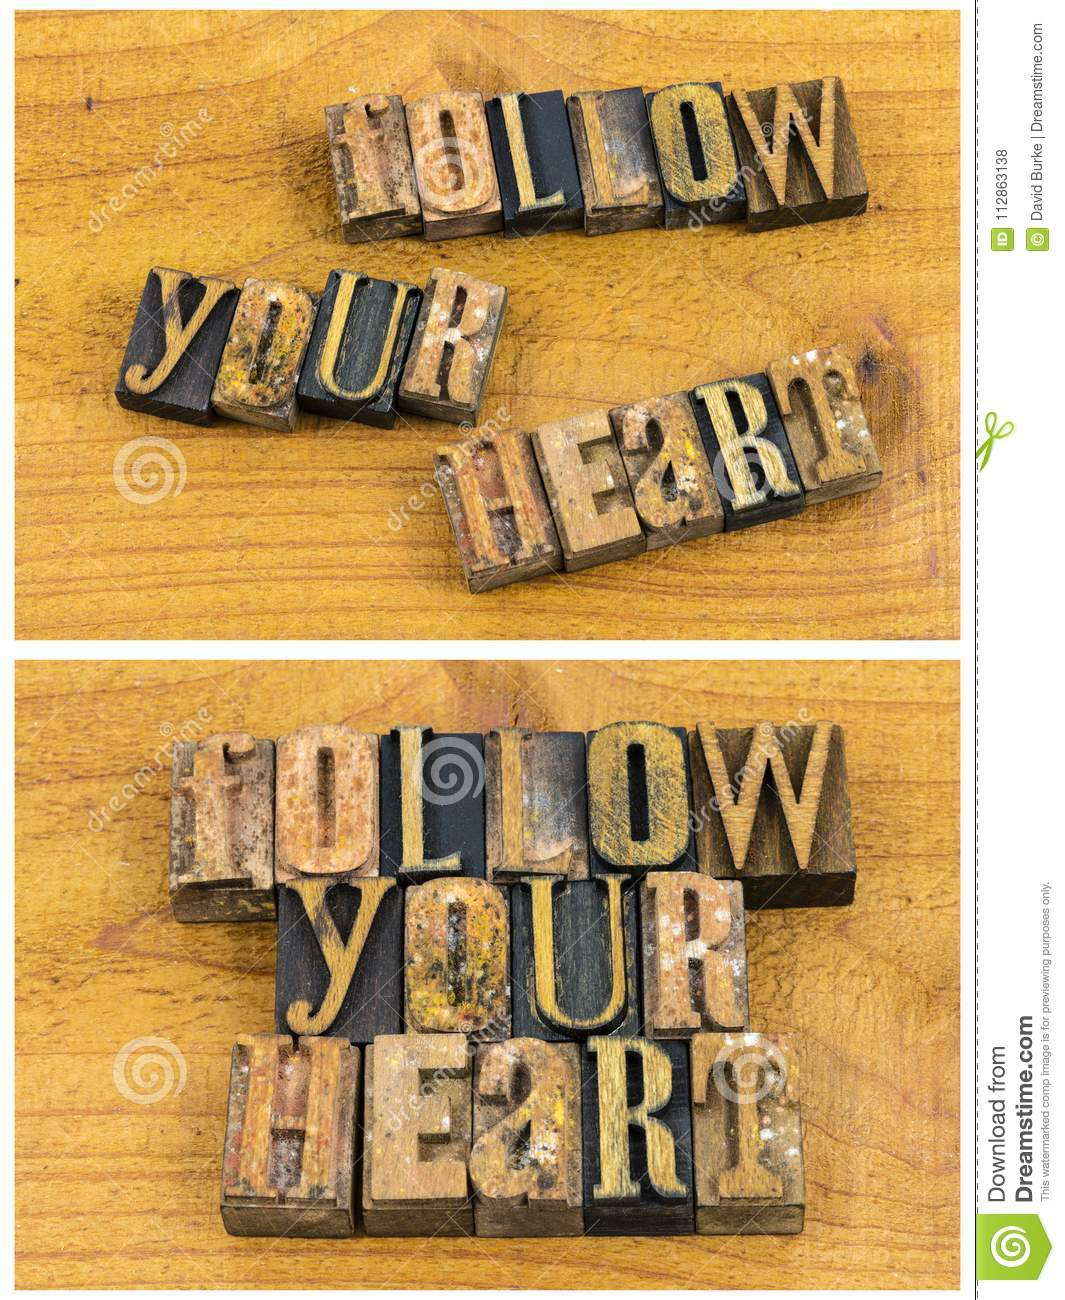 Message Love Follow Your Heart Hearts Desire Letterpress Wooden Block Letters Words Inspirational